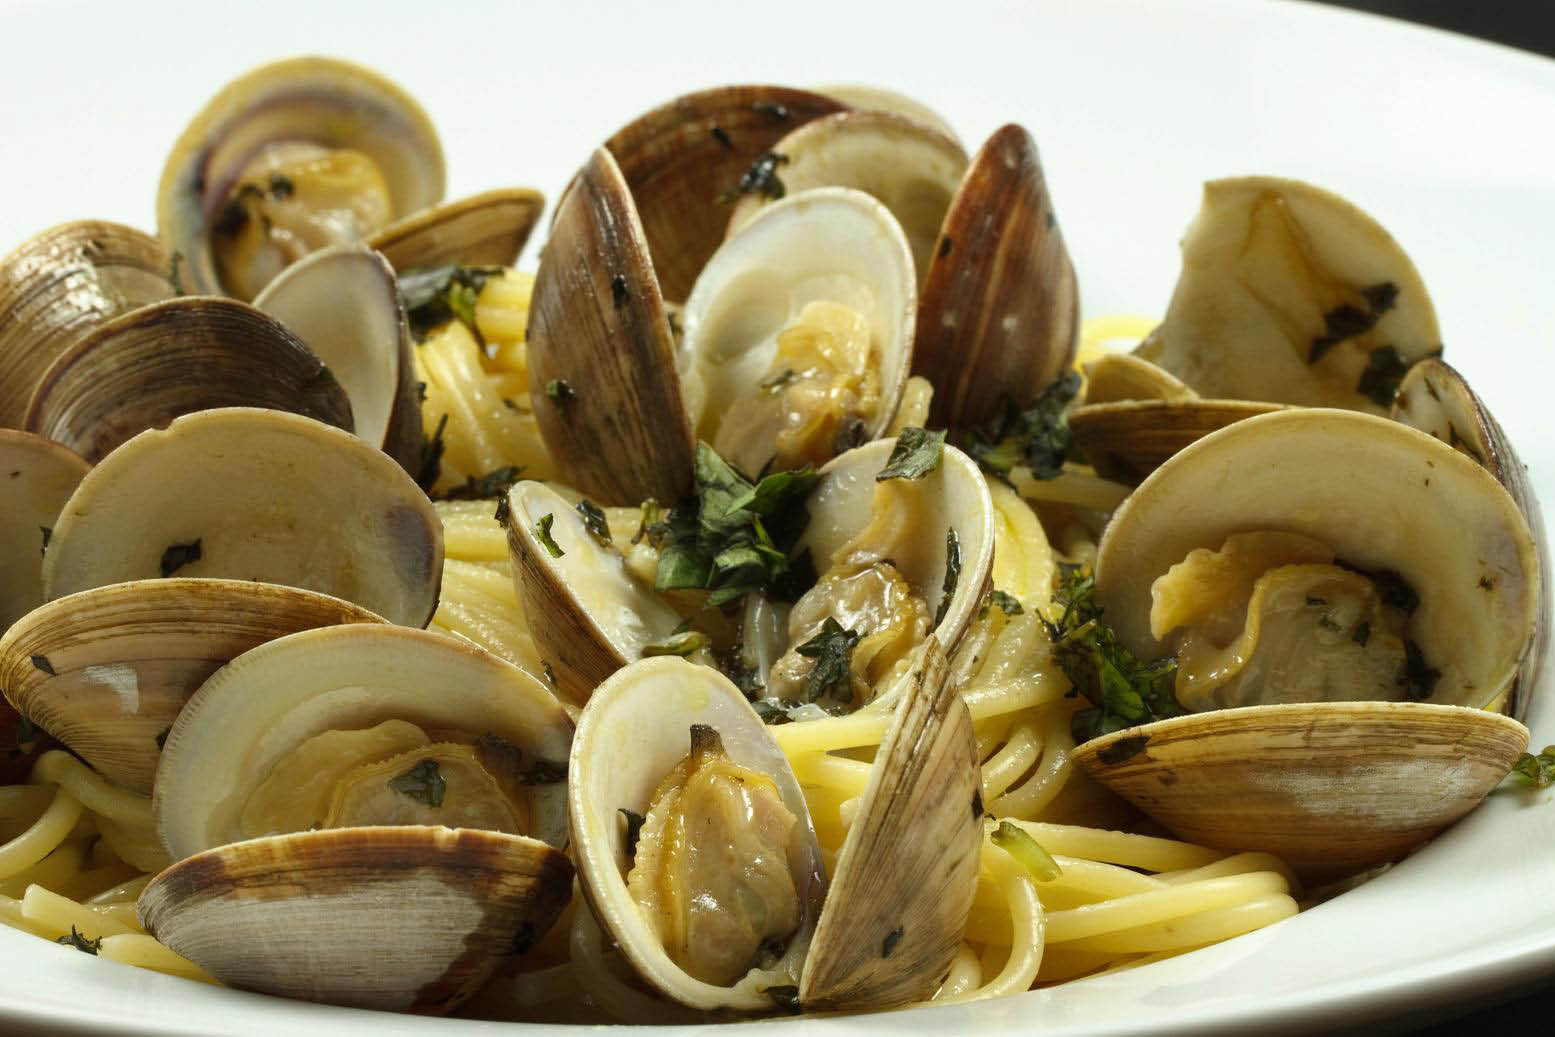 Papa's deliciously fresh clams